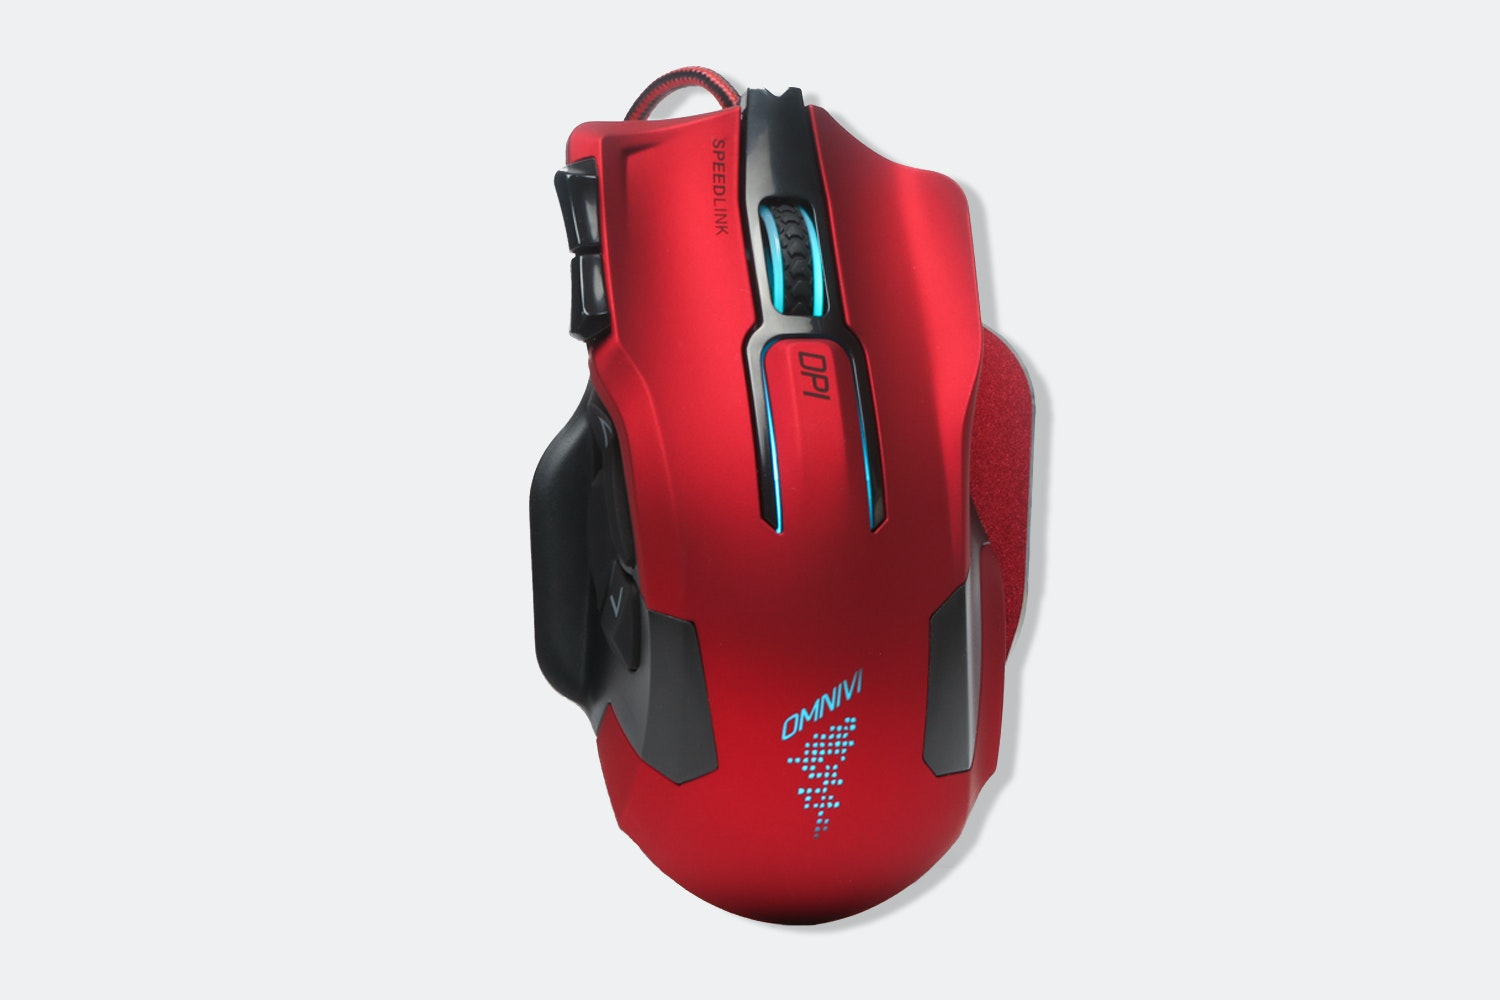 OMNIVI Core Gaming Mouse (+ $50)